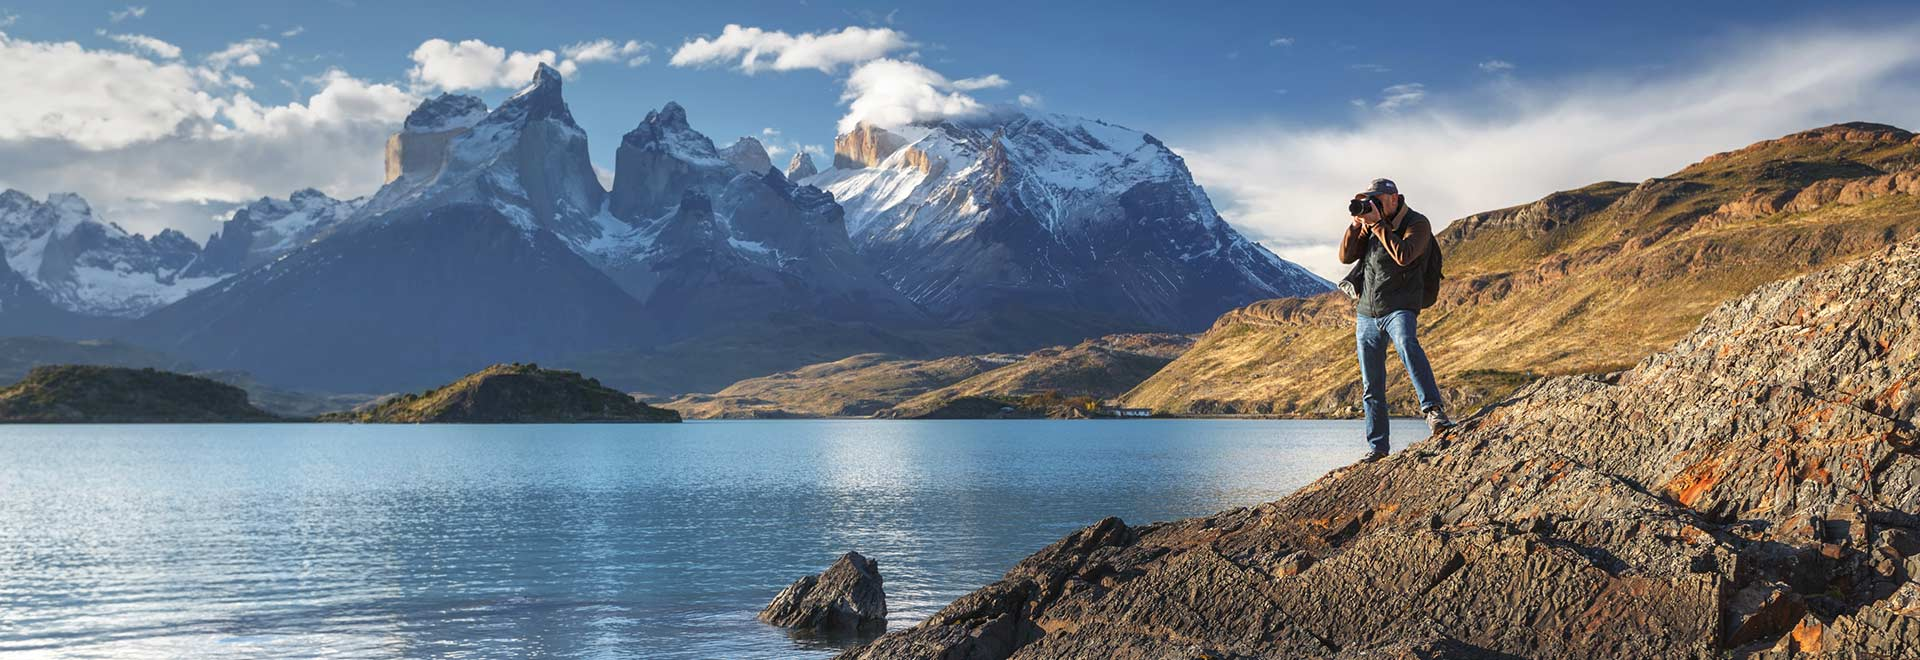 South America Wings Over Argentina Chile Brazil Torres del Paine MH